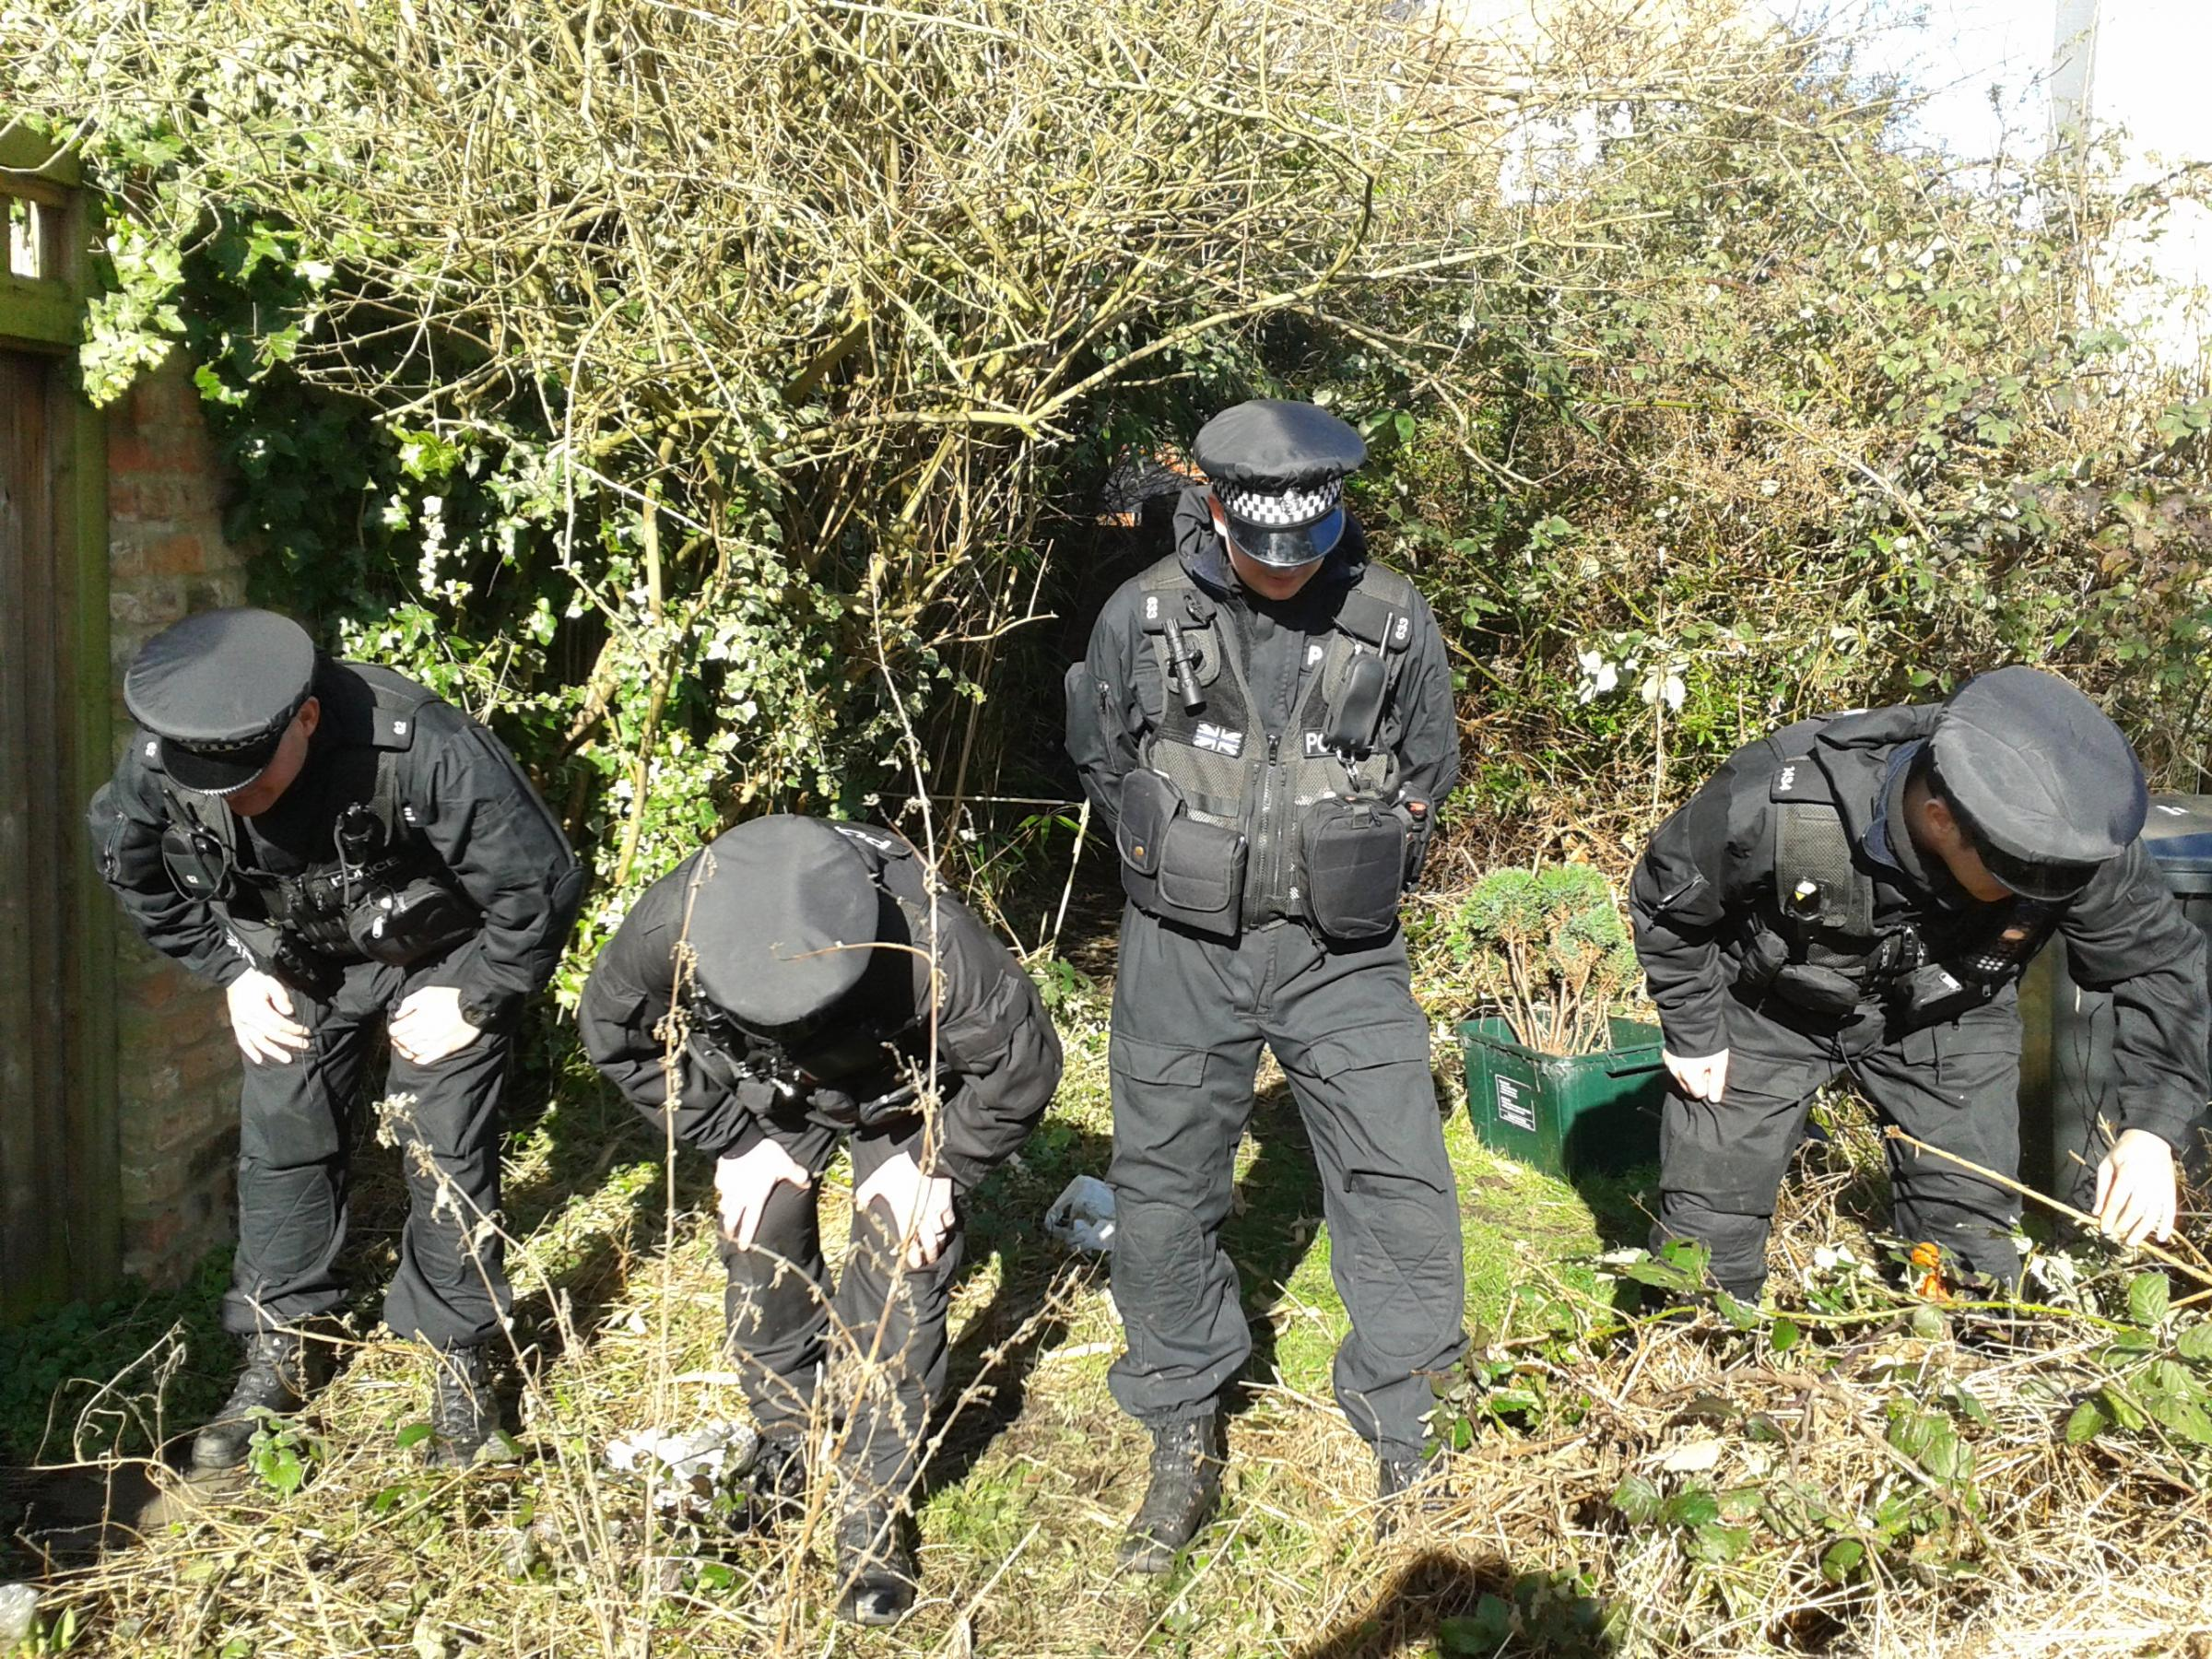 Police carry out a search of the alleyway behind Claudia Lawrence's home in Heworth, York